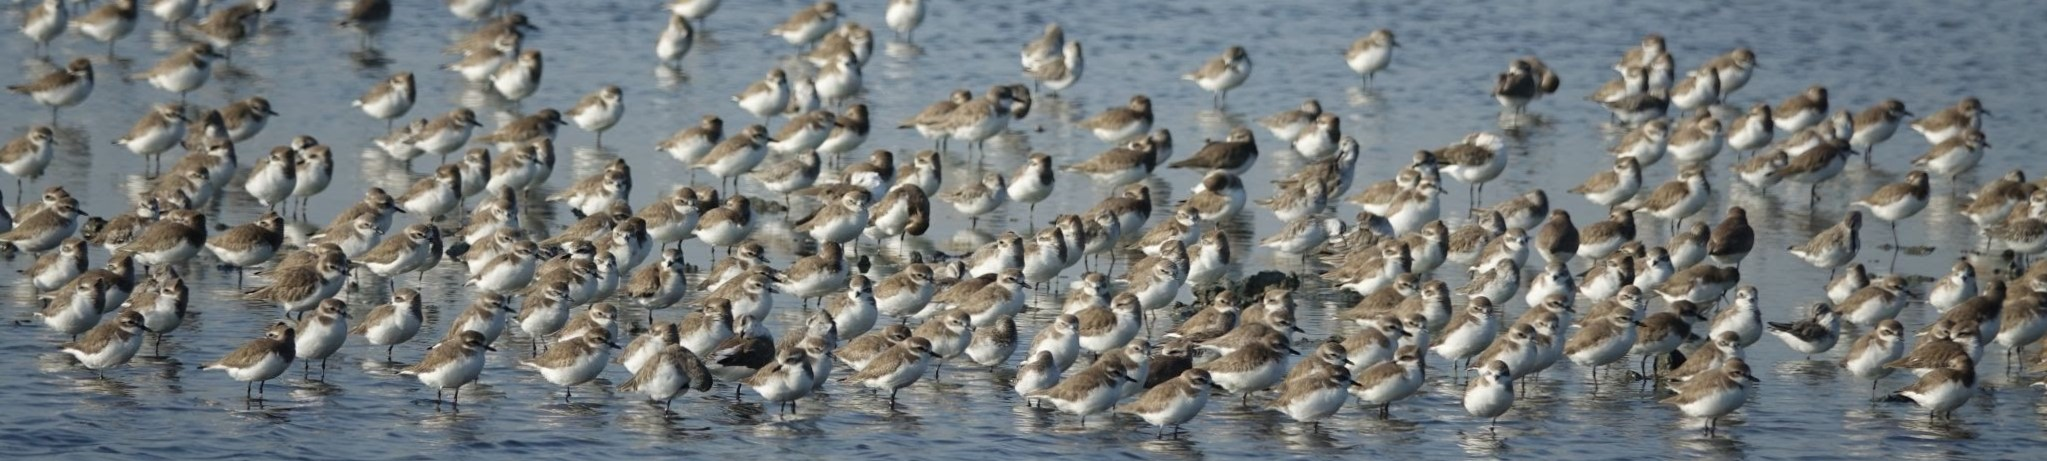 A mixed flock of shorebirds in Thailand from 2019. Such scenes are now nothing more than a distant dream in Singapore today.